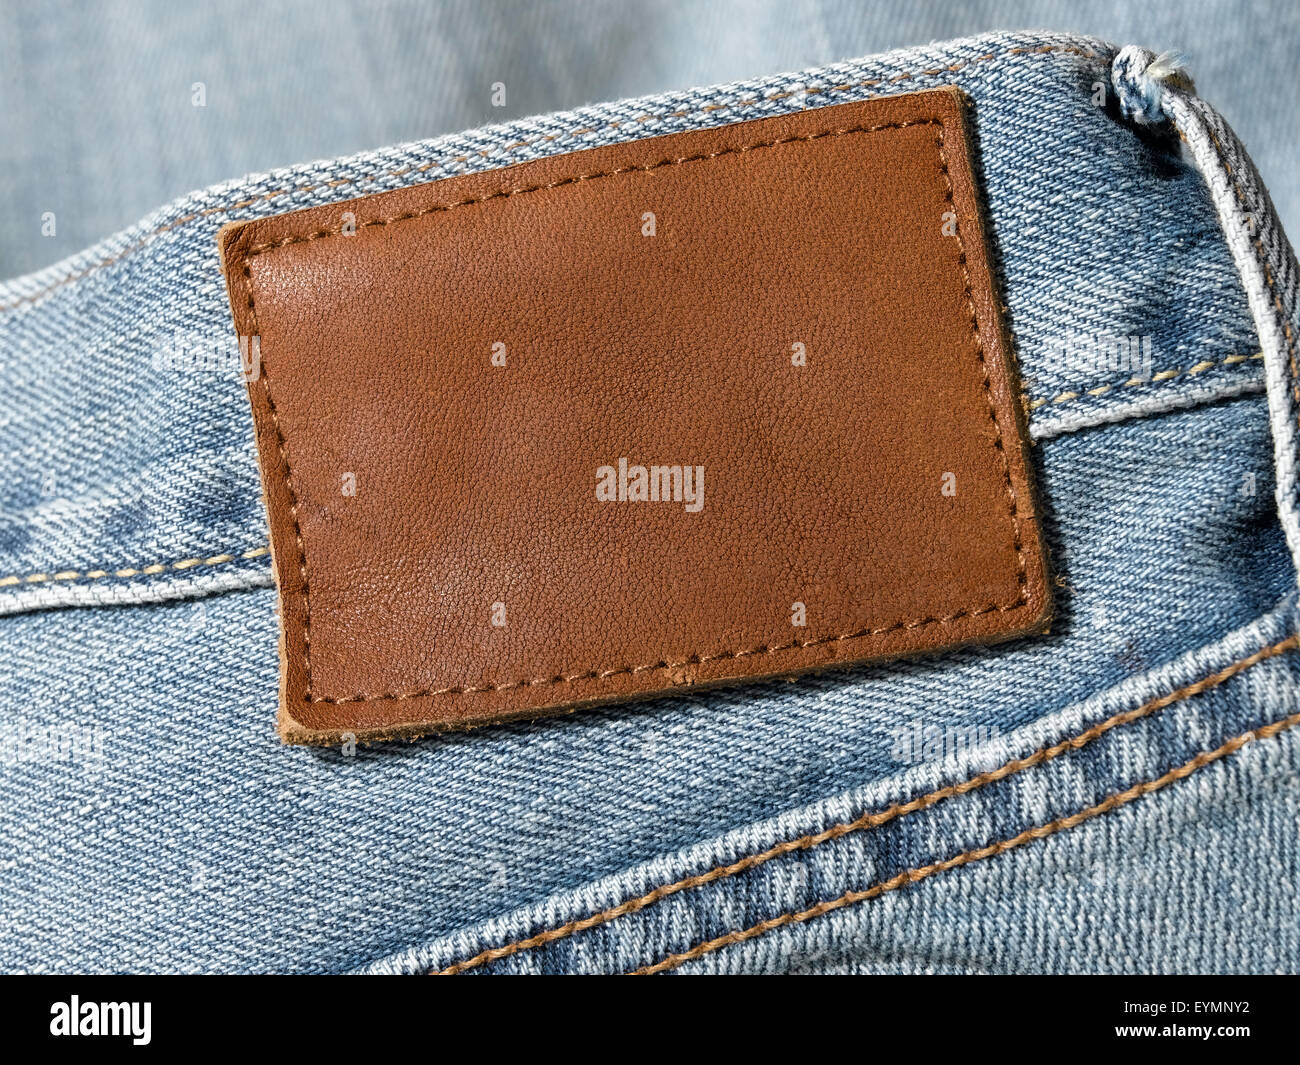 c5f66c78 Jeans Tag Stock Photos & Jeans Tag Stock Images - Alamy